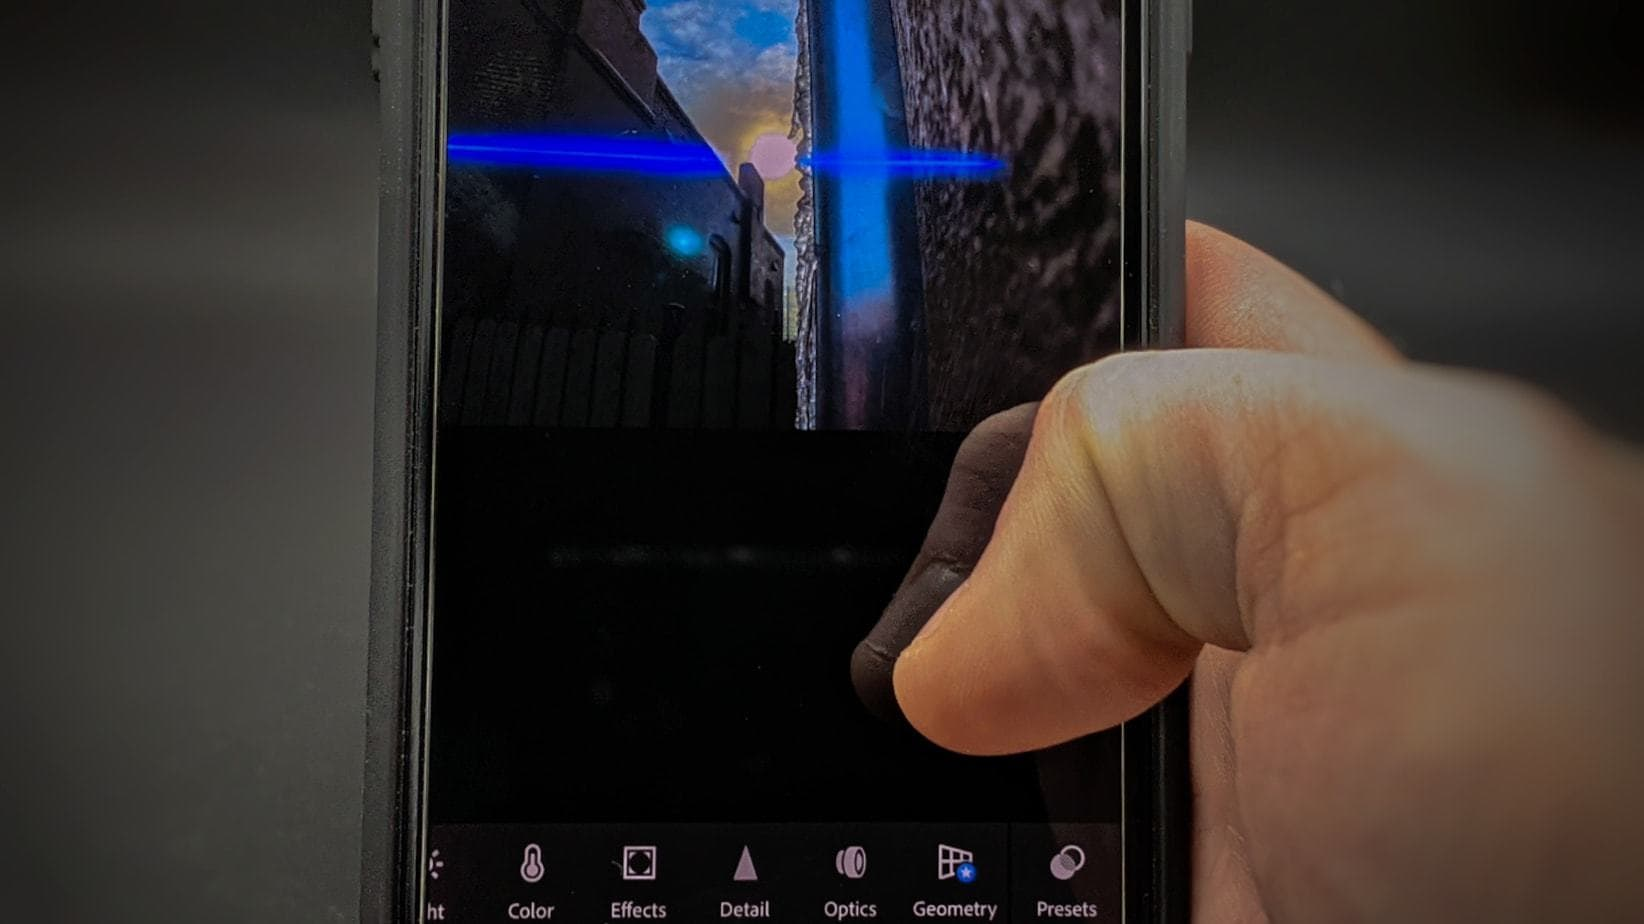 How to Edit Photos on Your Smartphone